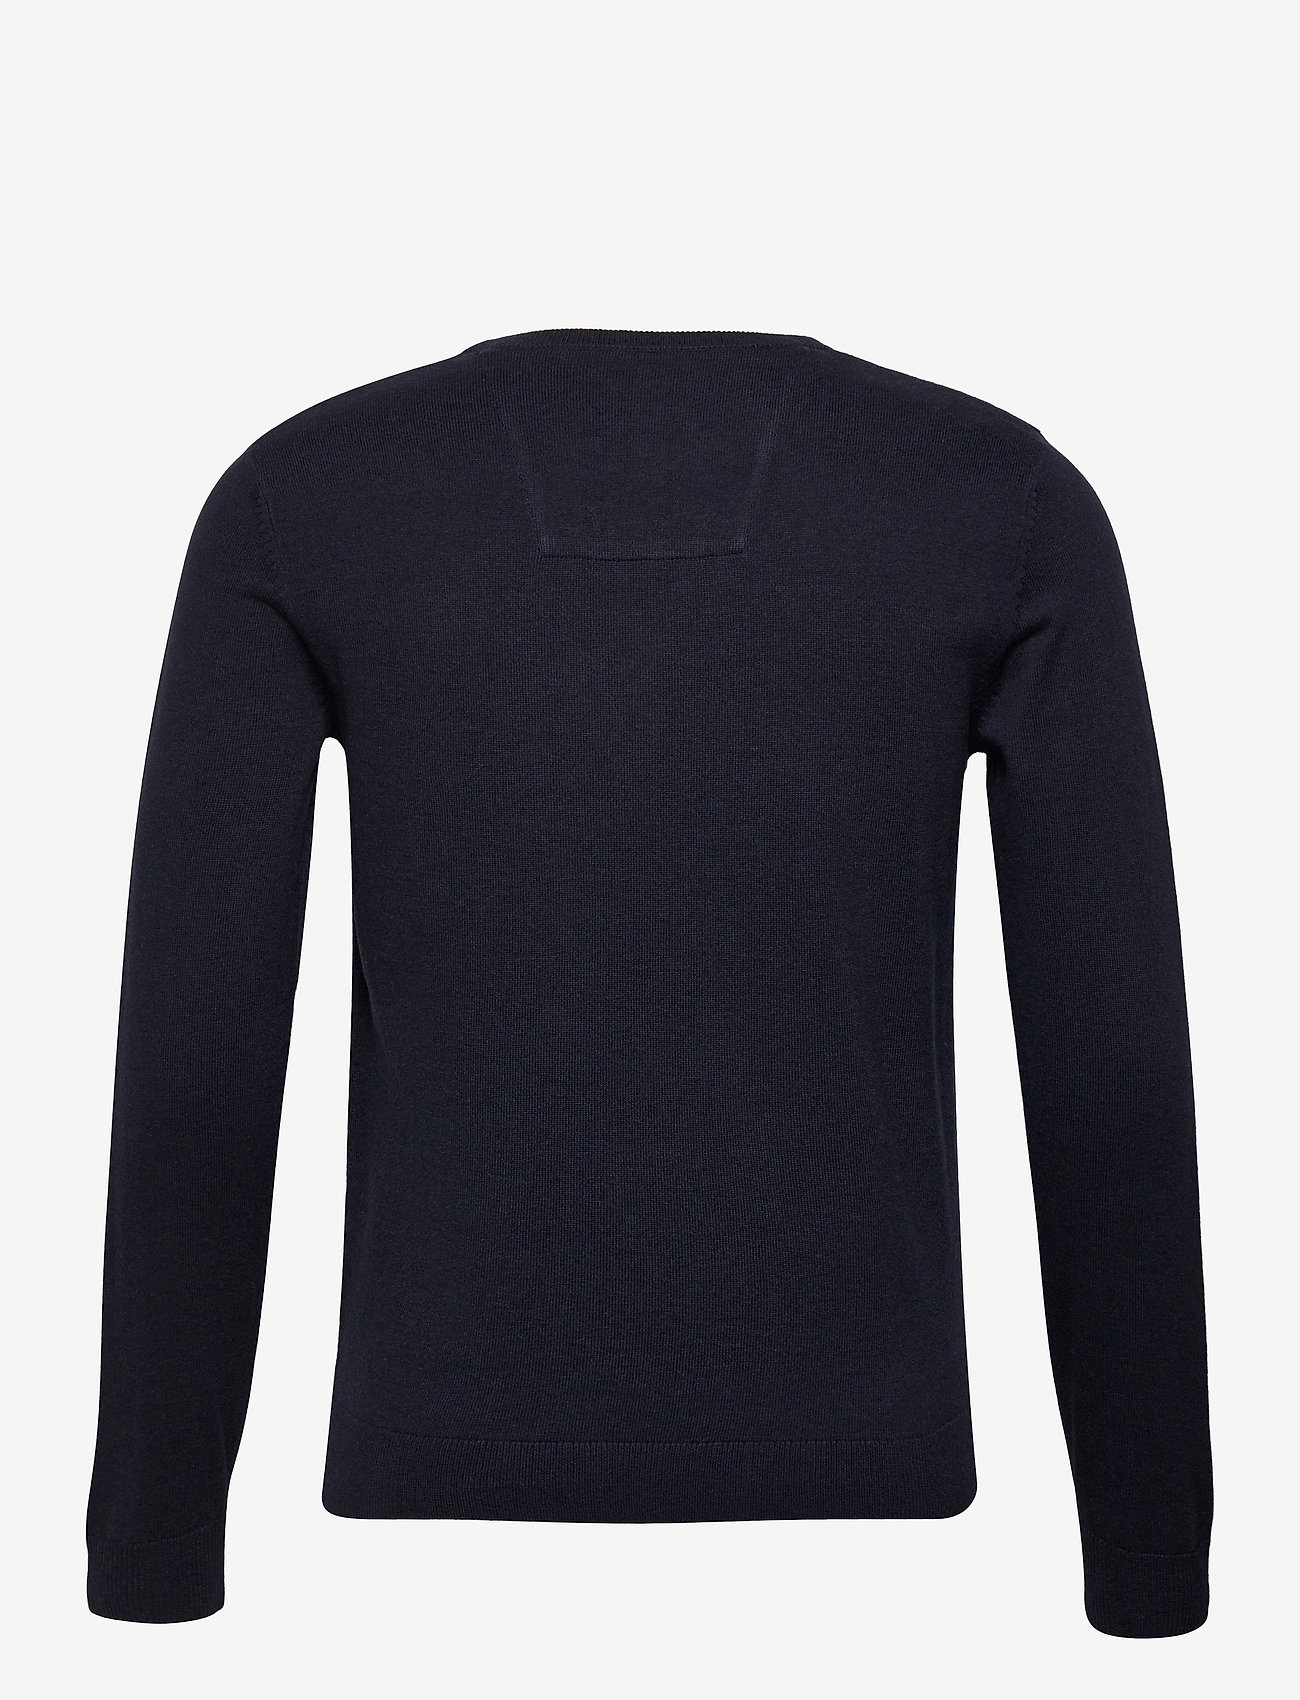 Tom Tailor basic crew n - Strikkevarer KNITTED NAVY MELANGE - Menn Klær